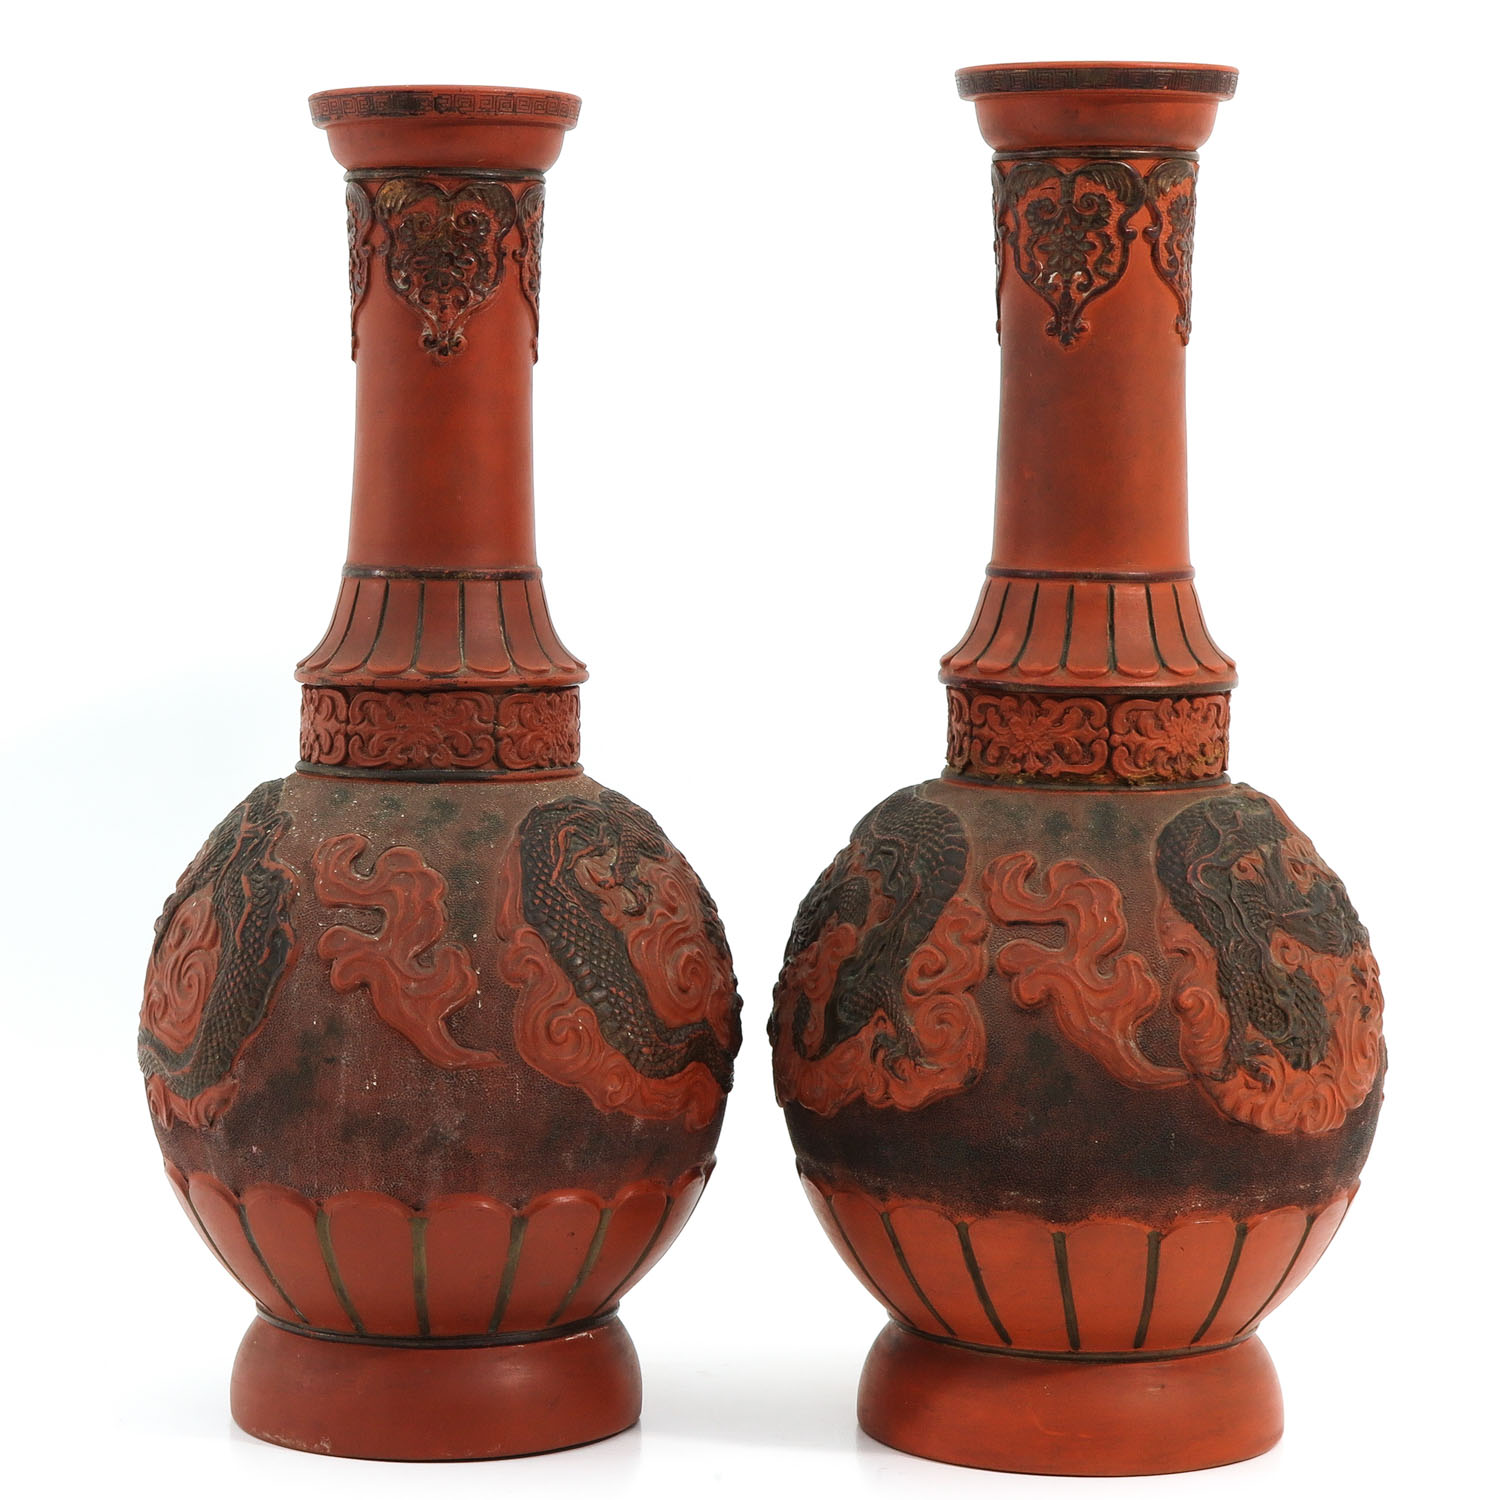 A Pair of Stoneware Vases - Image 2 of 10